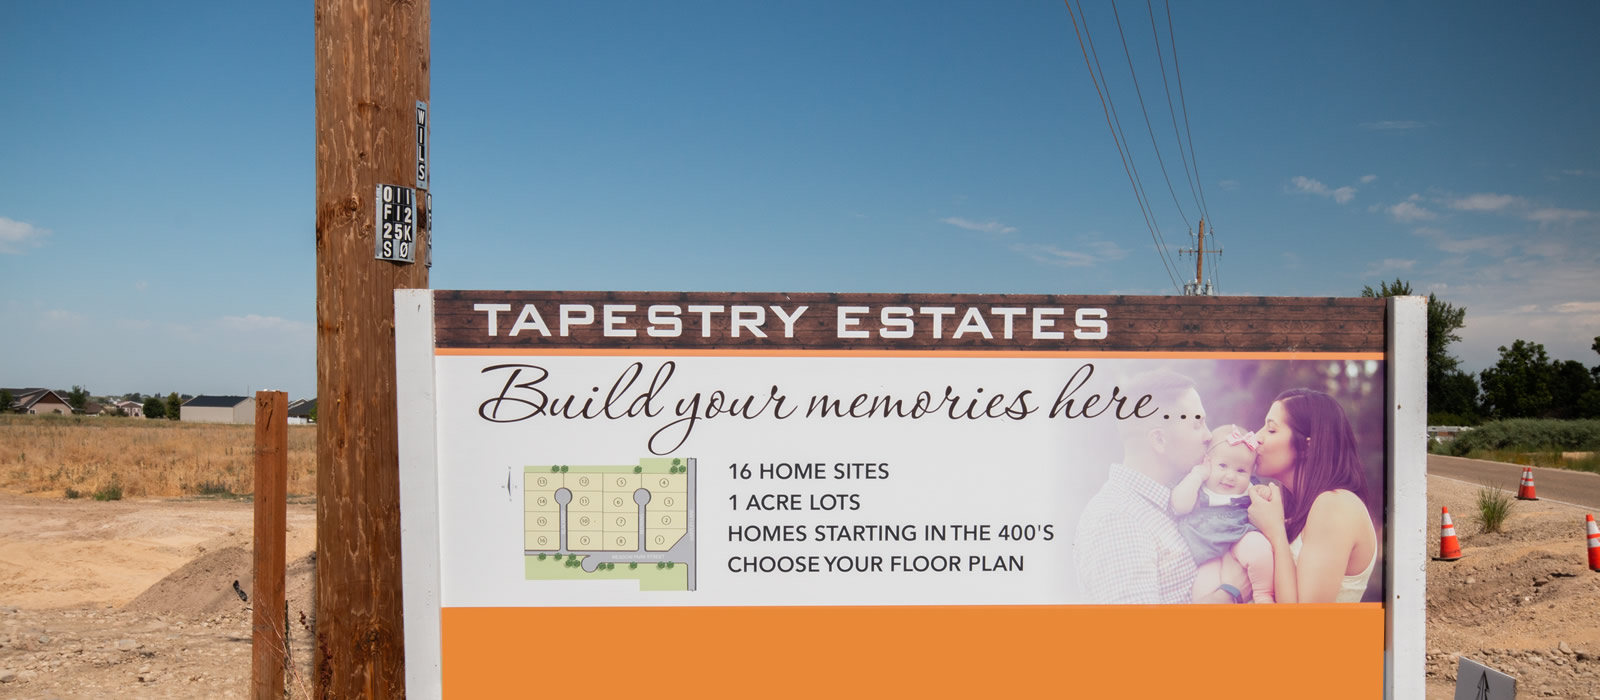 Tapestry Estates Middleton Idaho